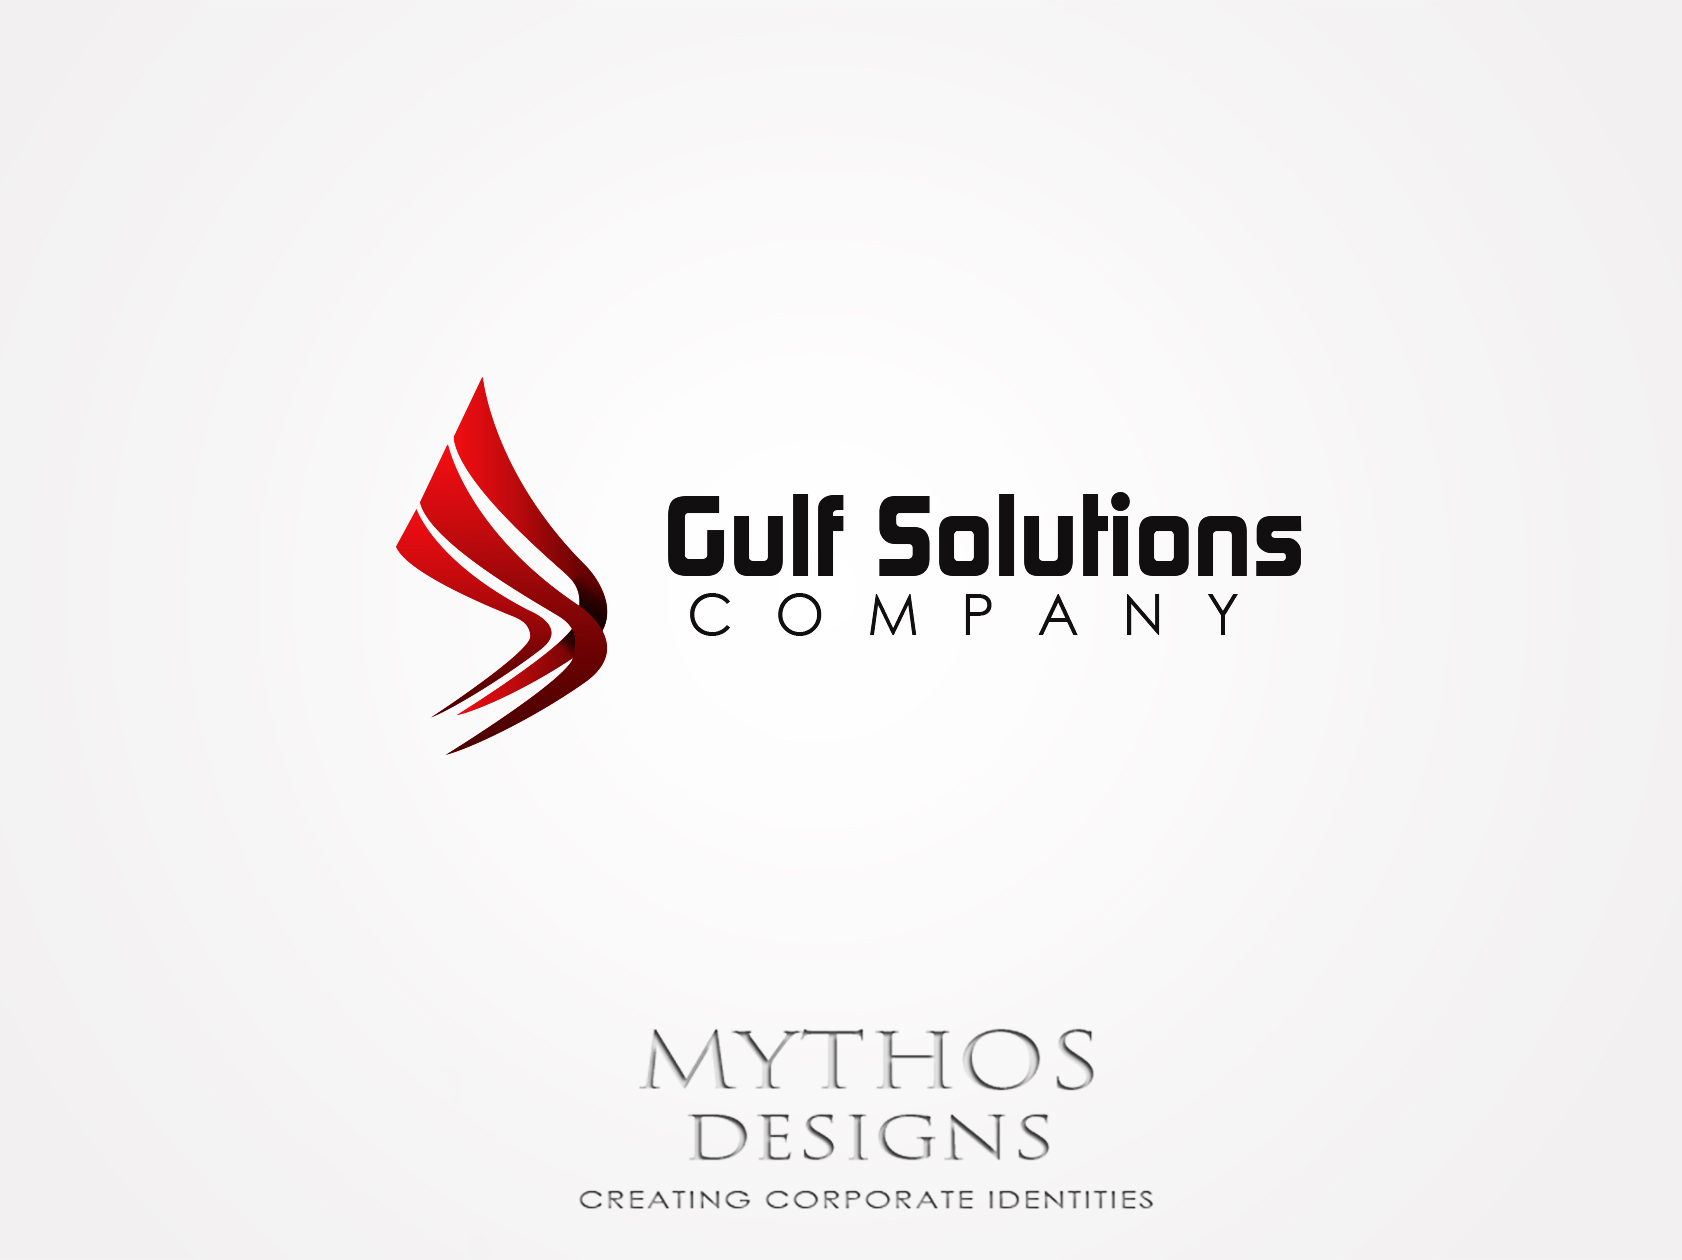 Logo Design by Mythos Designs - Entry No. 27 in the Logo Design Contest New Logo Design for Gulf solutions company.